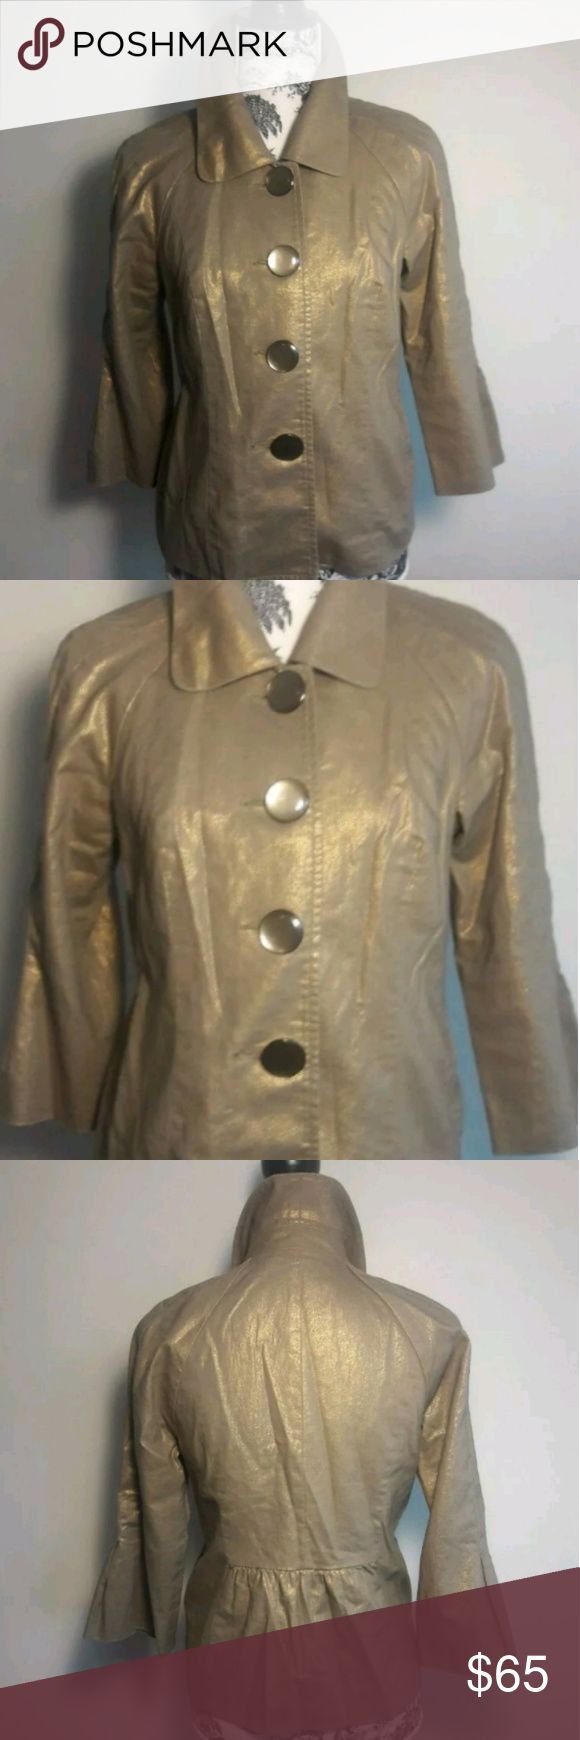 Mac & Jac Iridescent Gold Metallic Jacket Size M Mac and Jac   Iridescent Gold Metallic Shimmer Jacket W 3/4 Sleeves, Big Beautiful Iridescent Buttons & Two side pockets. Women's Size Medium. Retro Chic Super Cute & Stylish Jacket. Can be worn on any occasion. Dress it up or dress it down. Perfect addition to add to your wardrobe.A MUST HAVE!!!  Pre-owned in excellent condition  Color may not be exact due to lighting  Thank you for Looking & Sharing Happy Poshing😄 Mac & Jac Jackets…